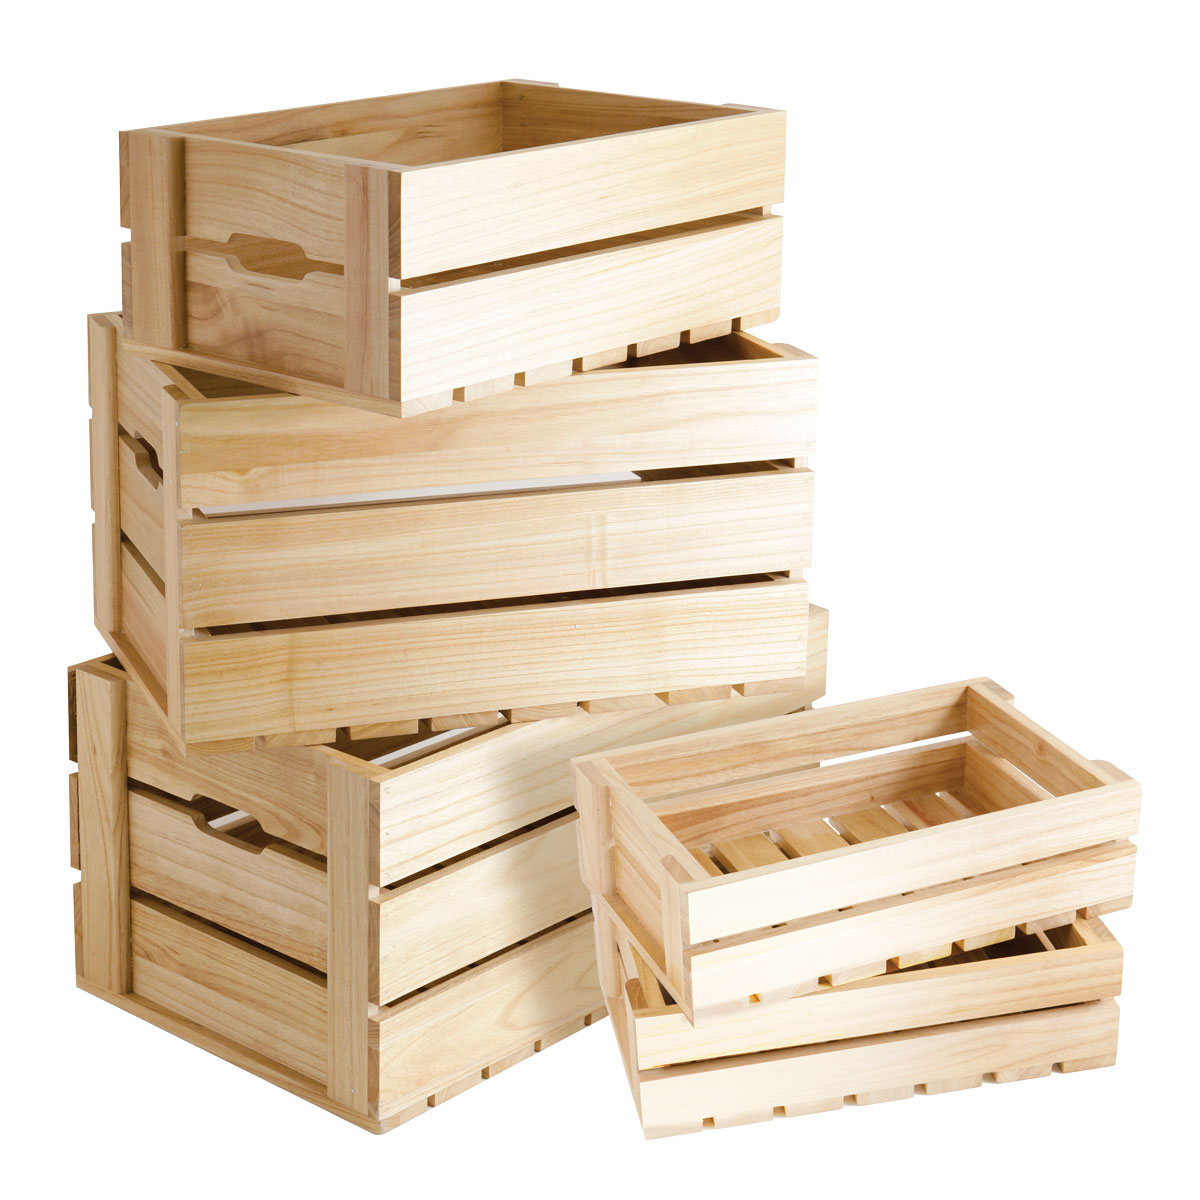 Simple scale home projects using wooden crates mens - Cajones de madera ikea ...